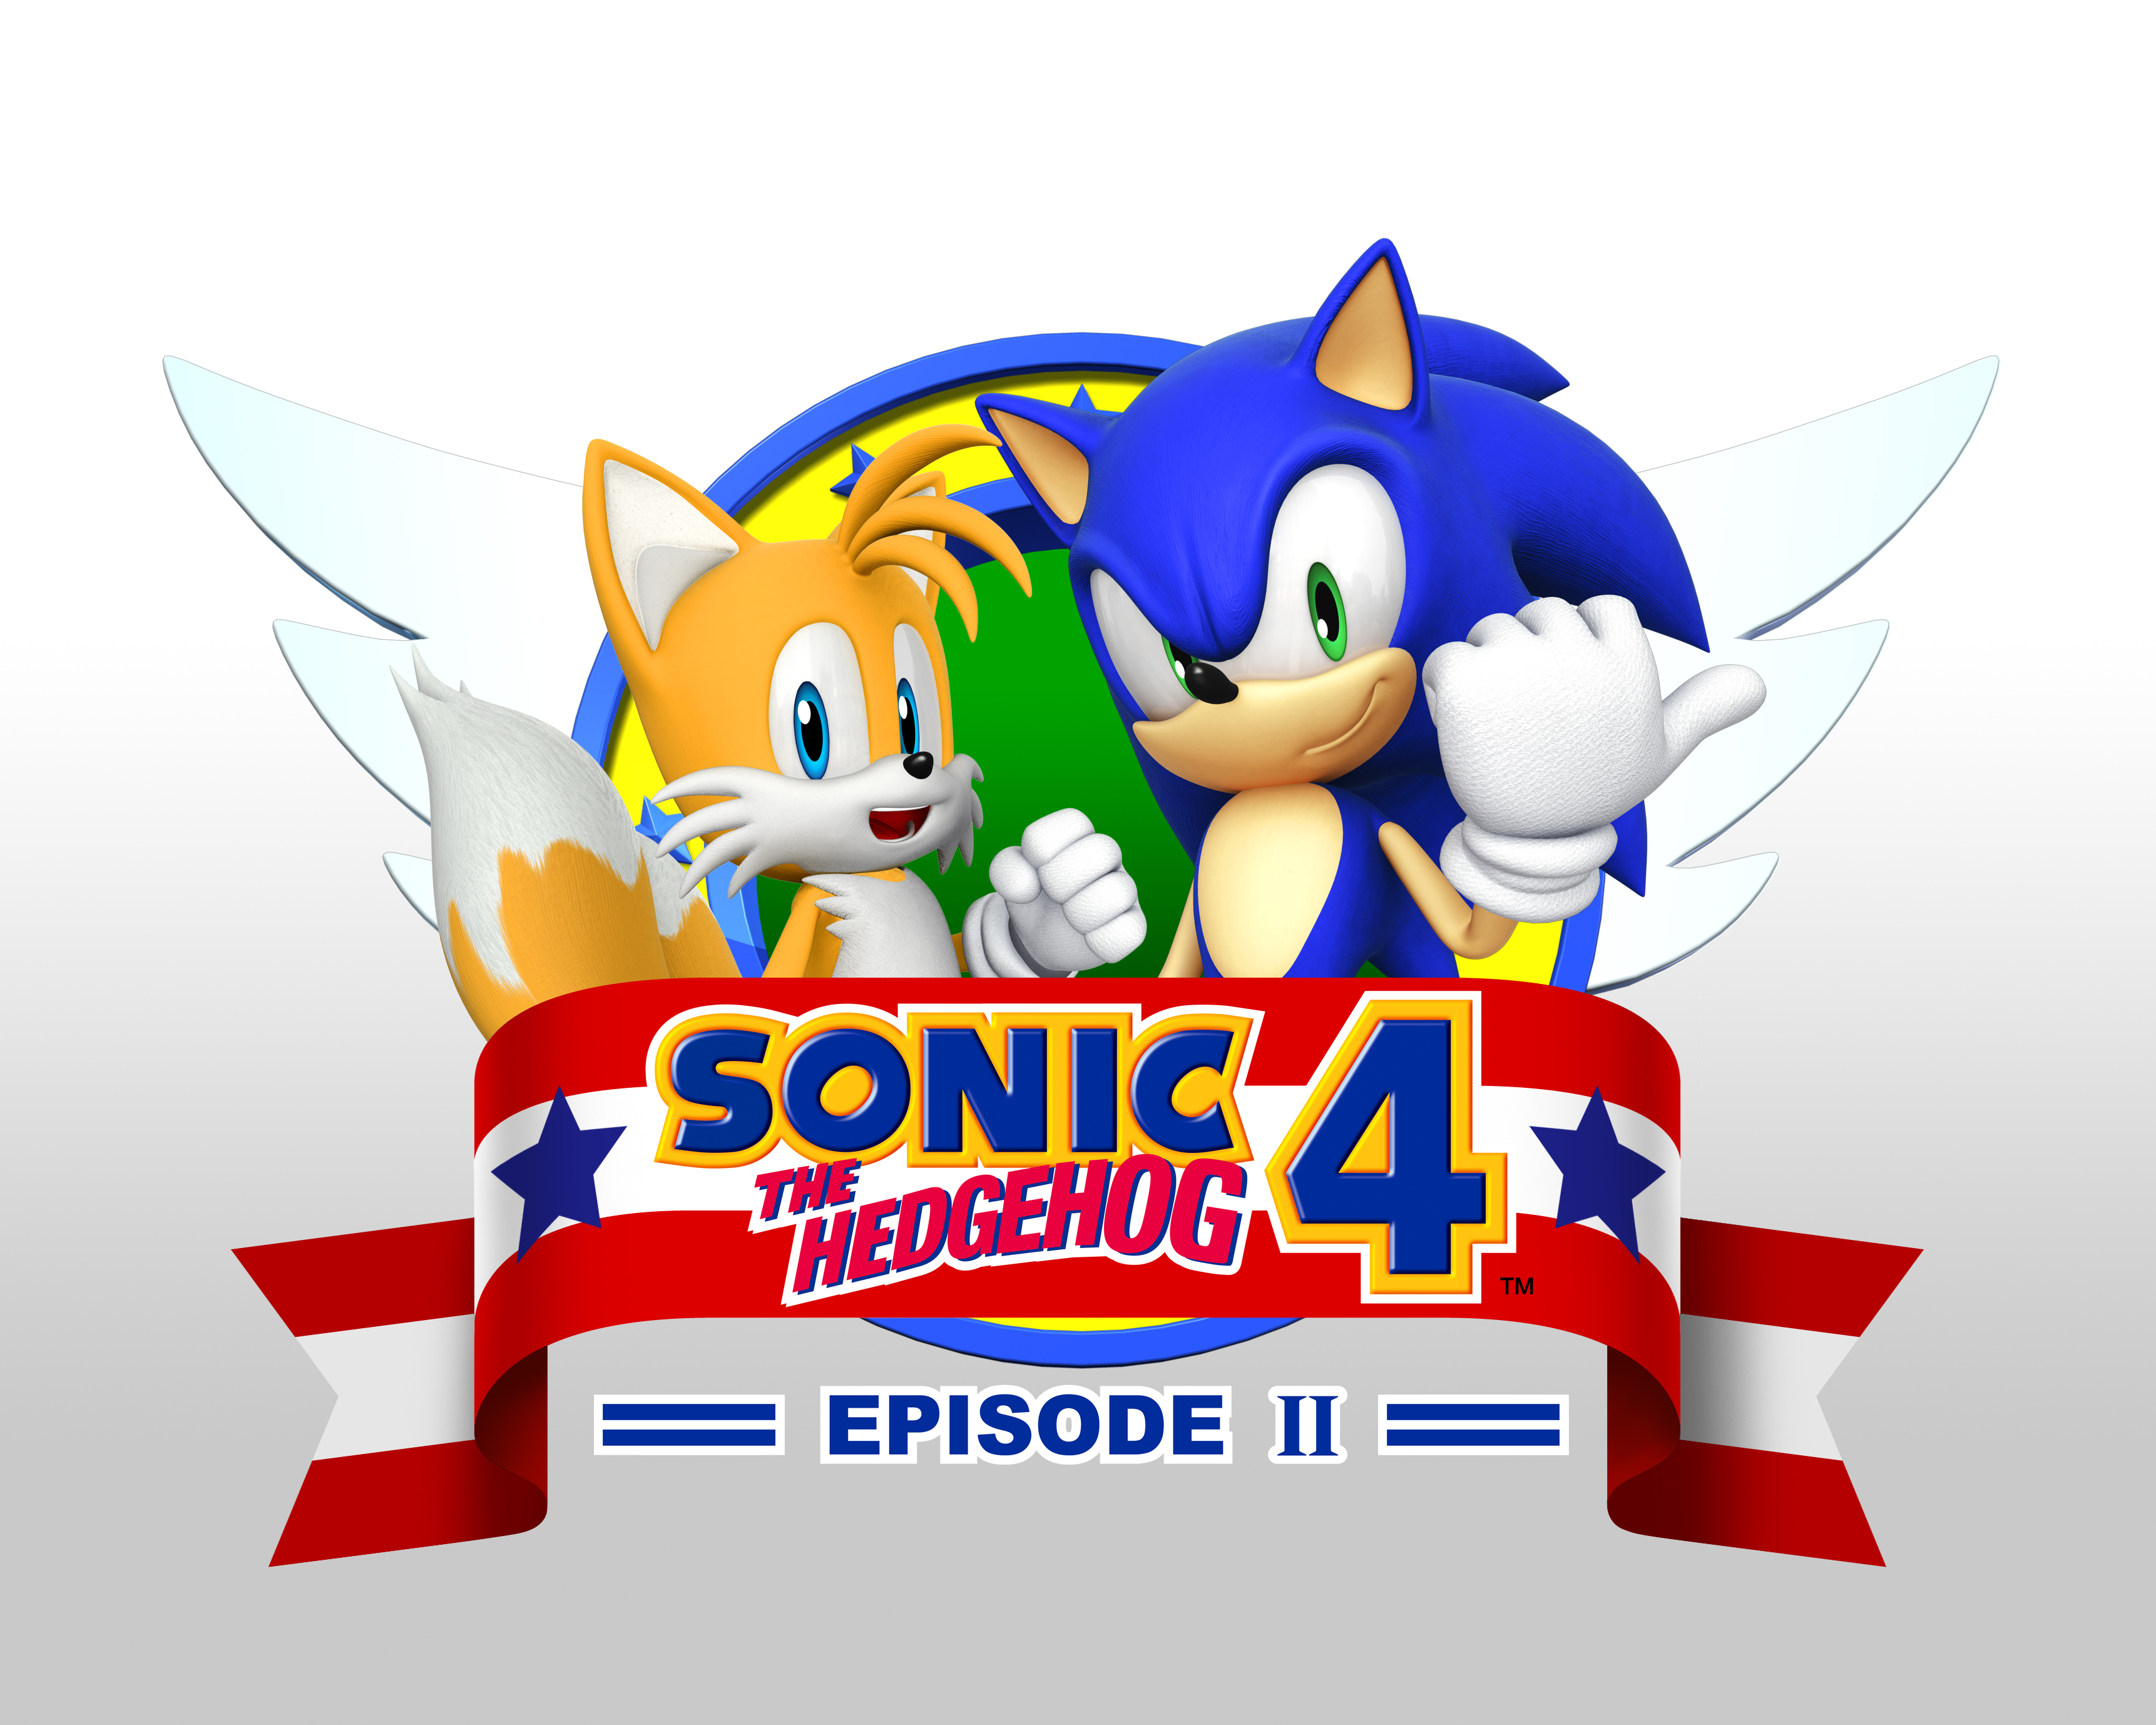 Sonic 4 Episode 1 & 2 Soundtracks Set For CD Release